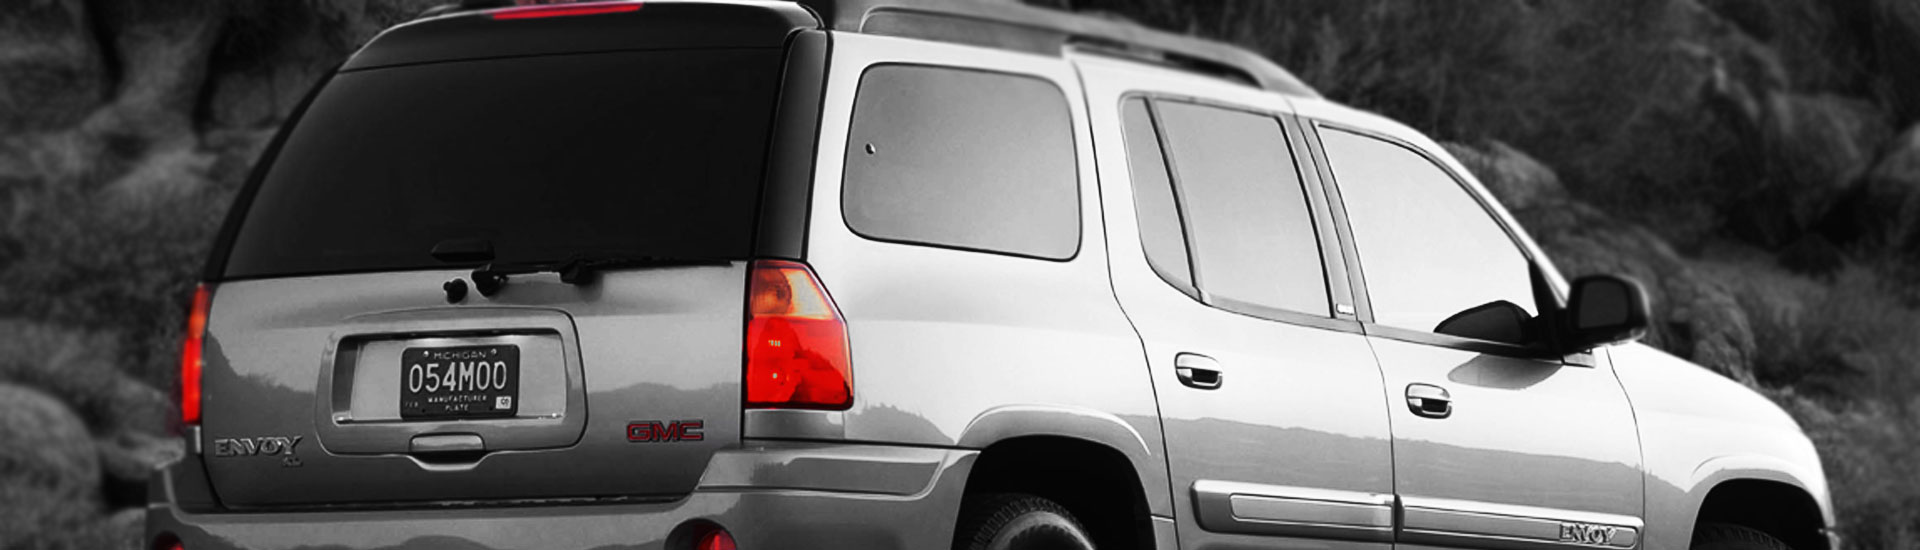 GMC Envoy Window Tint